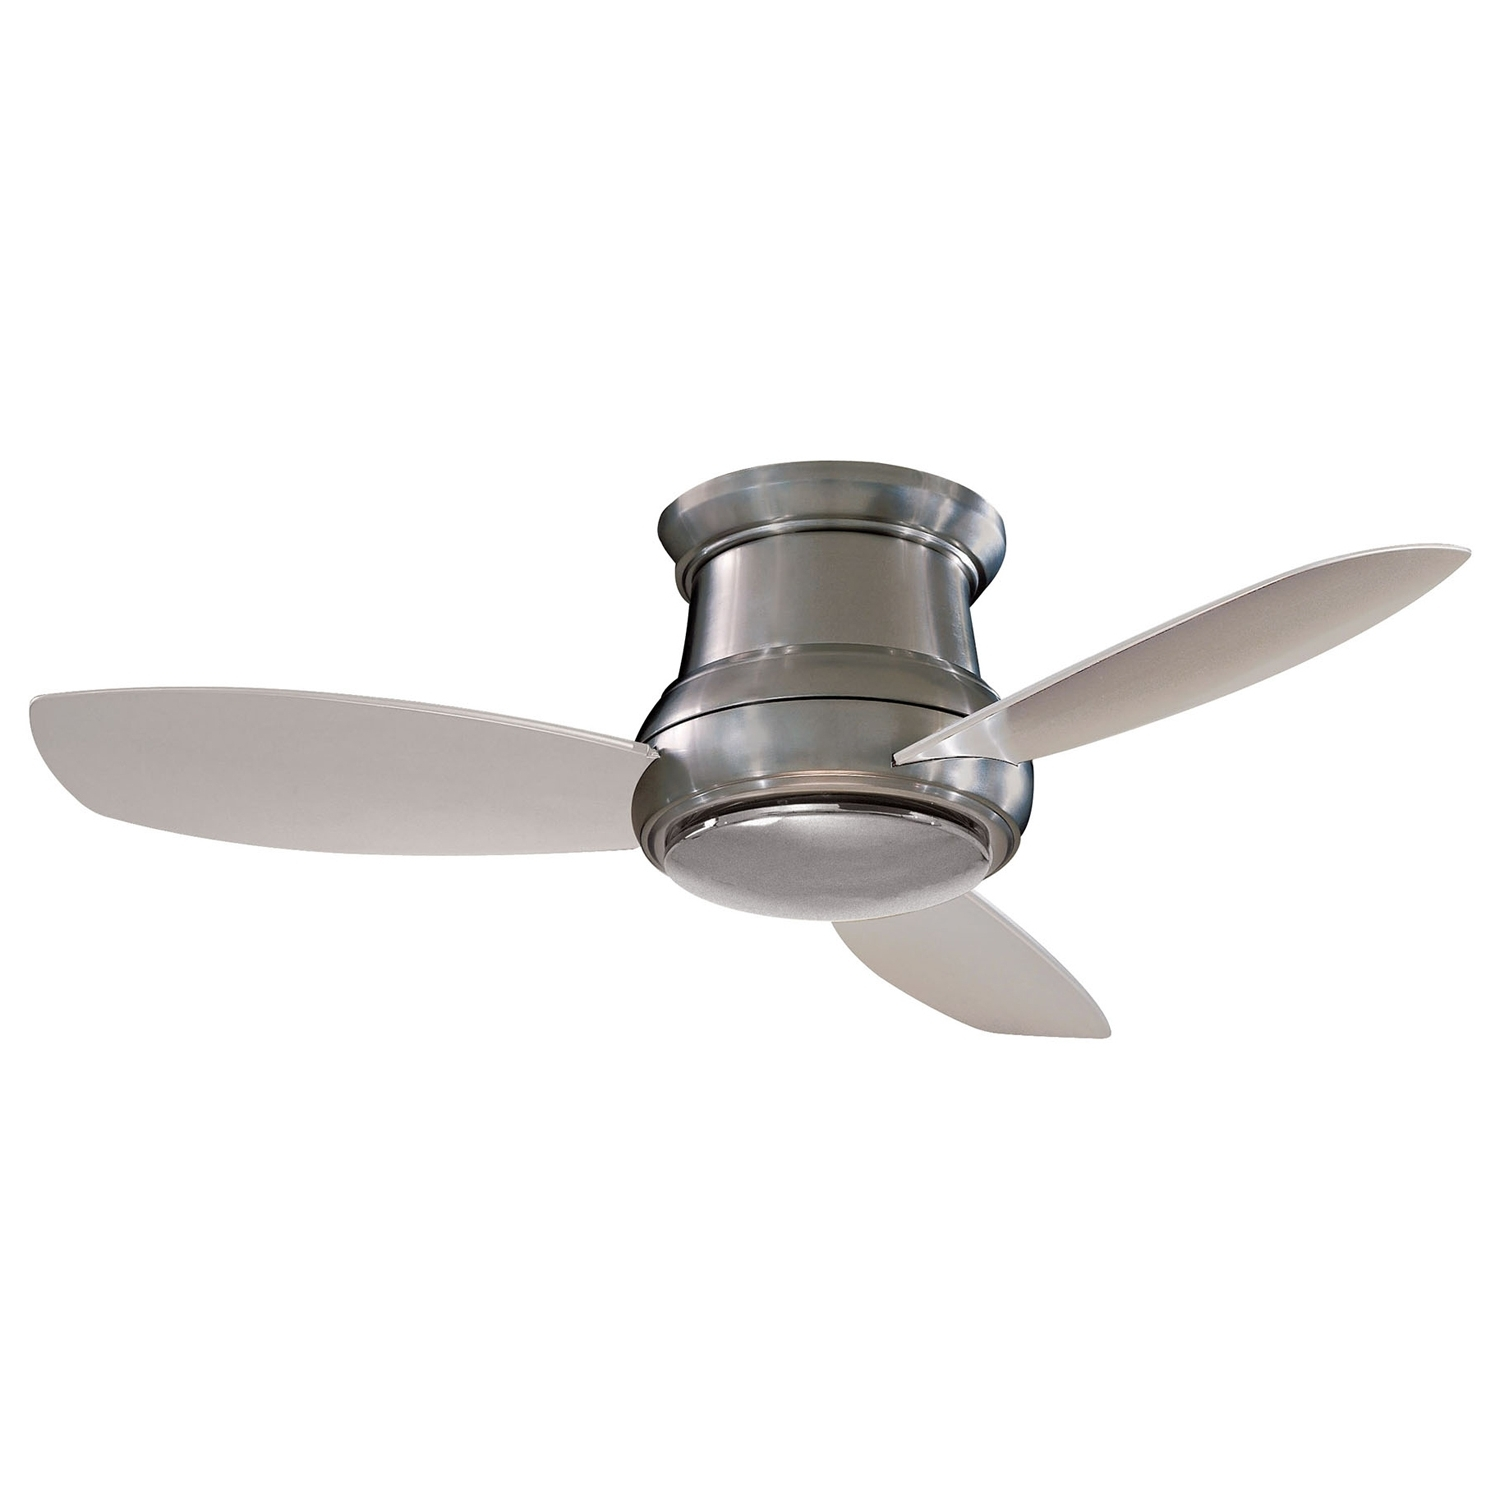 36 Inch Outdoor Ceiling Fans For Famous Ceiling Fan: Remarkable 36 Outdoor Ceiling Fan For Home 36 Inch Fans (View 6 of 20)